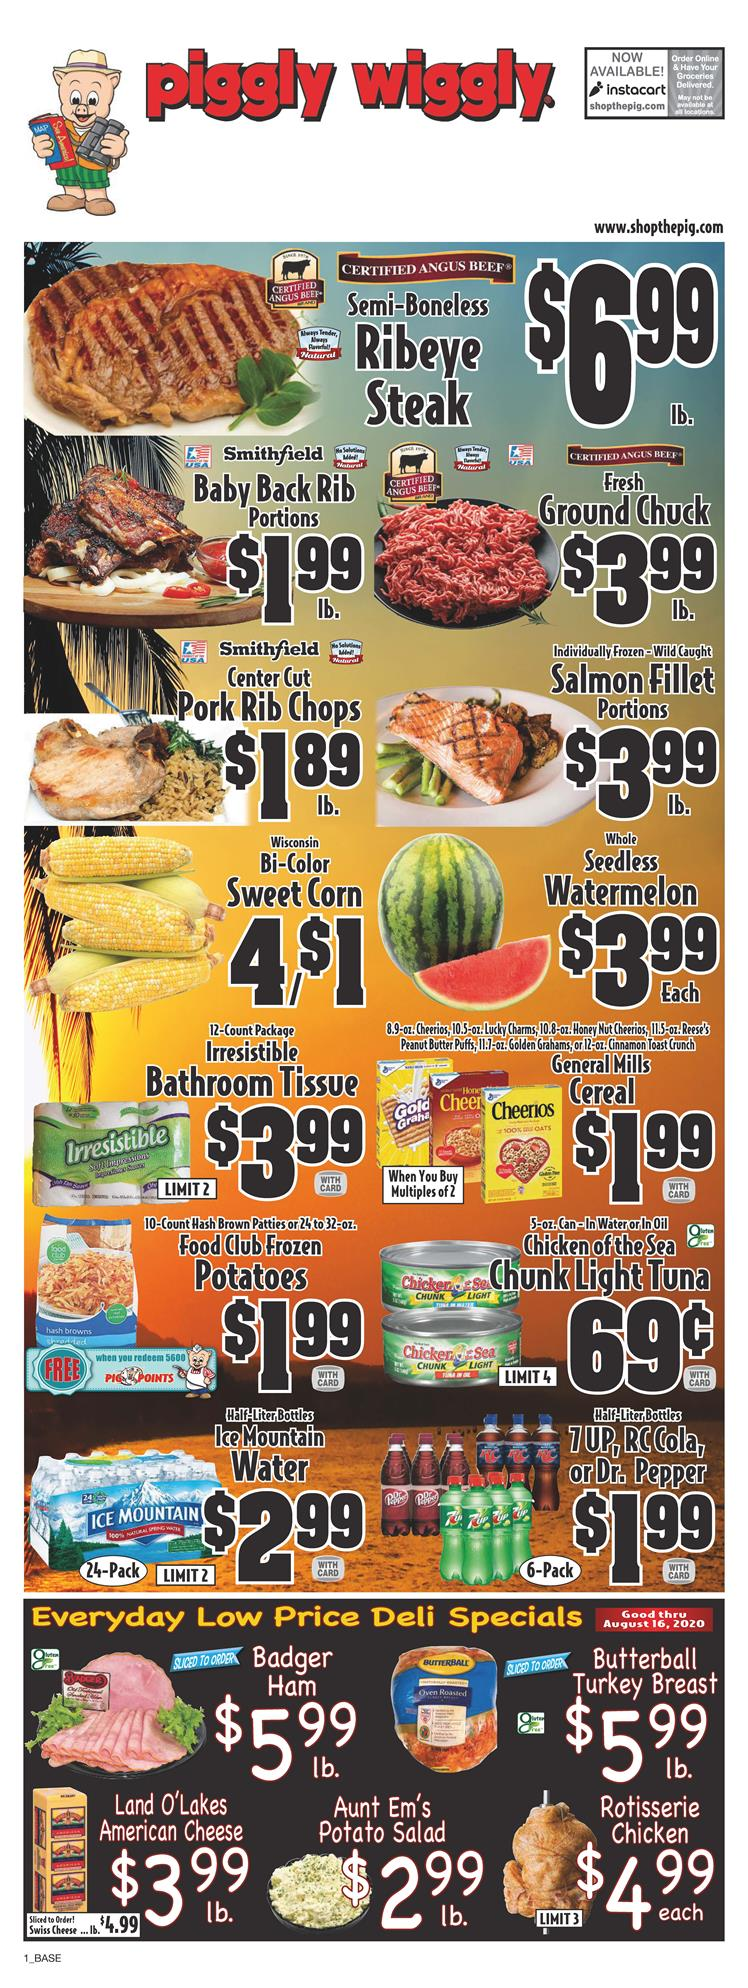 piggly wiggly ad aug 5 2020